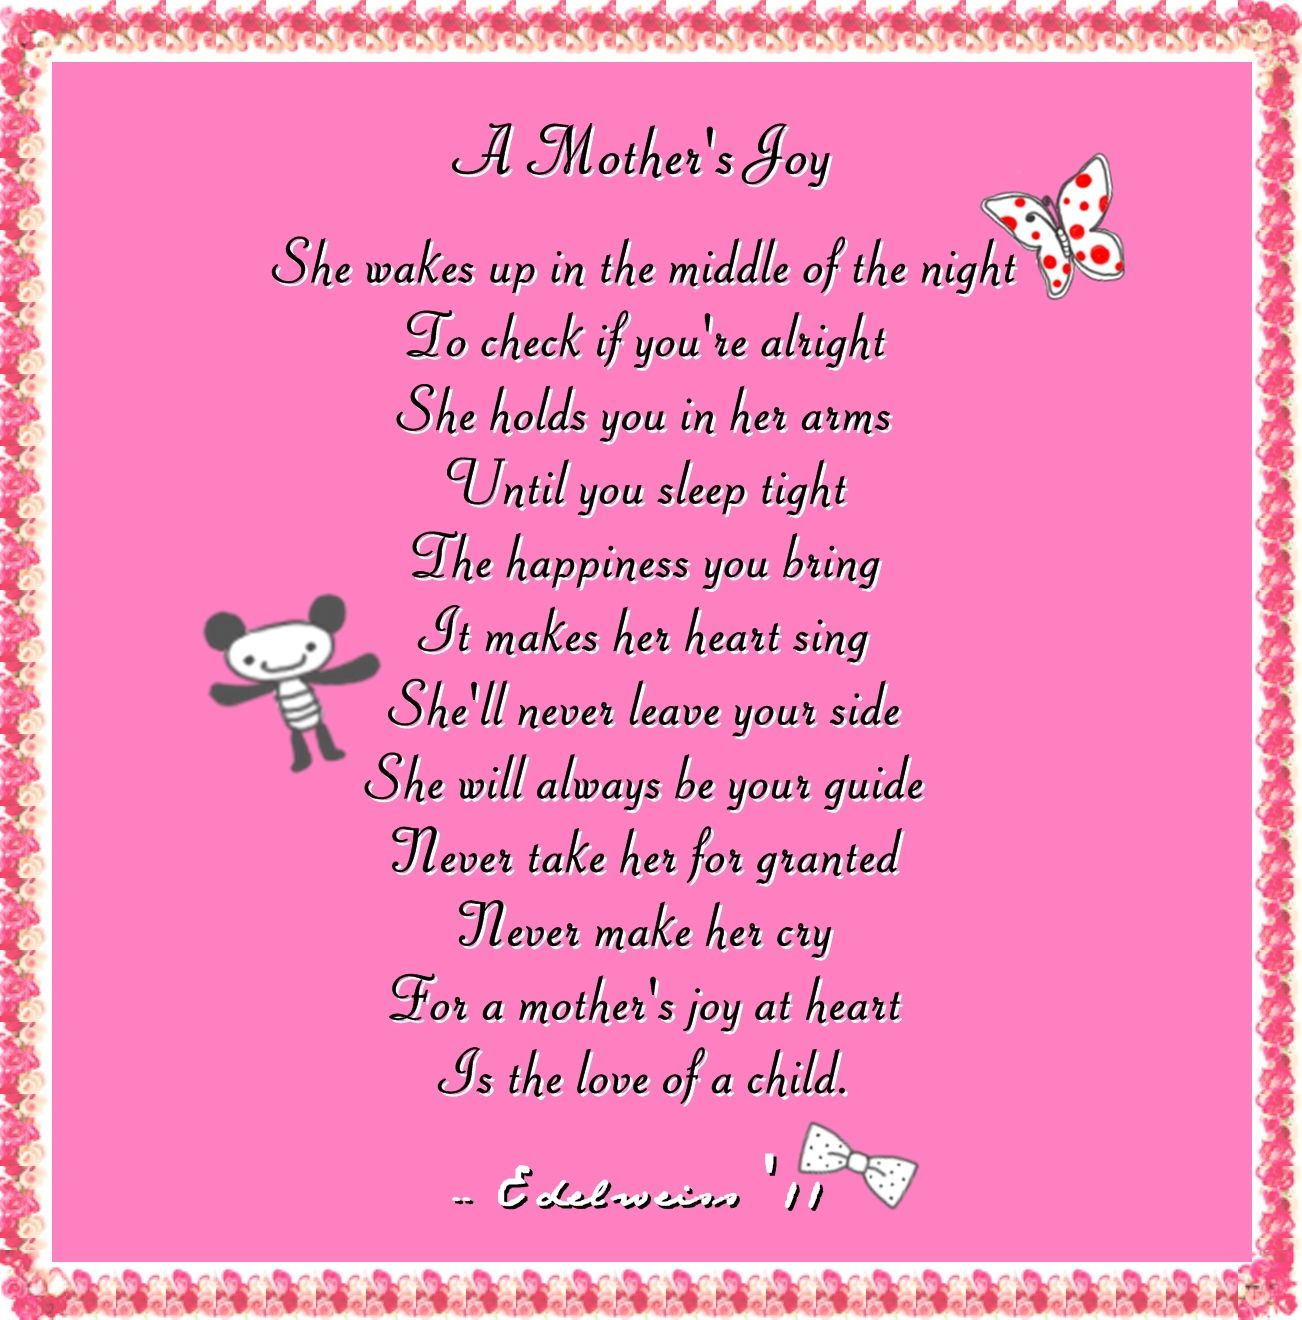 A Mother's Joy Pictures, Photos, and Images for Facebook ...